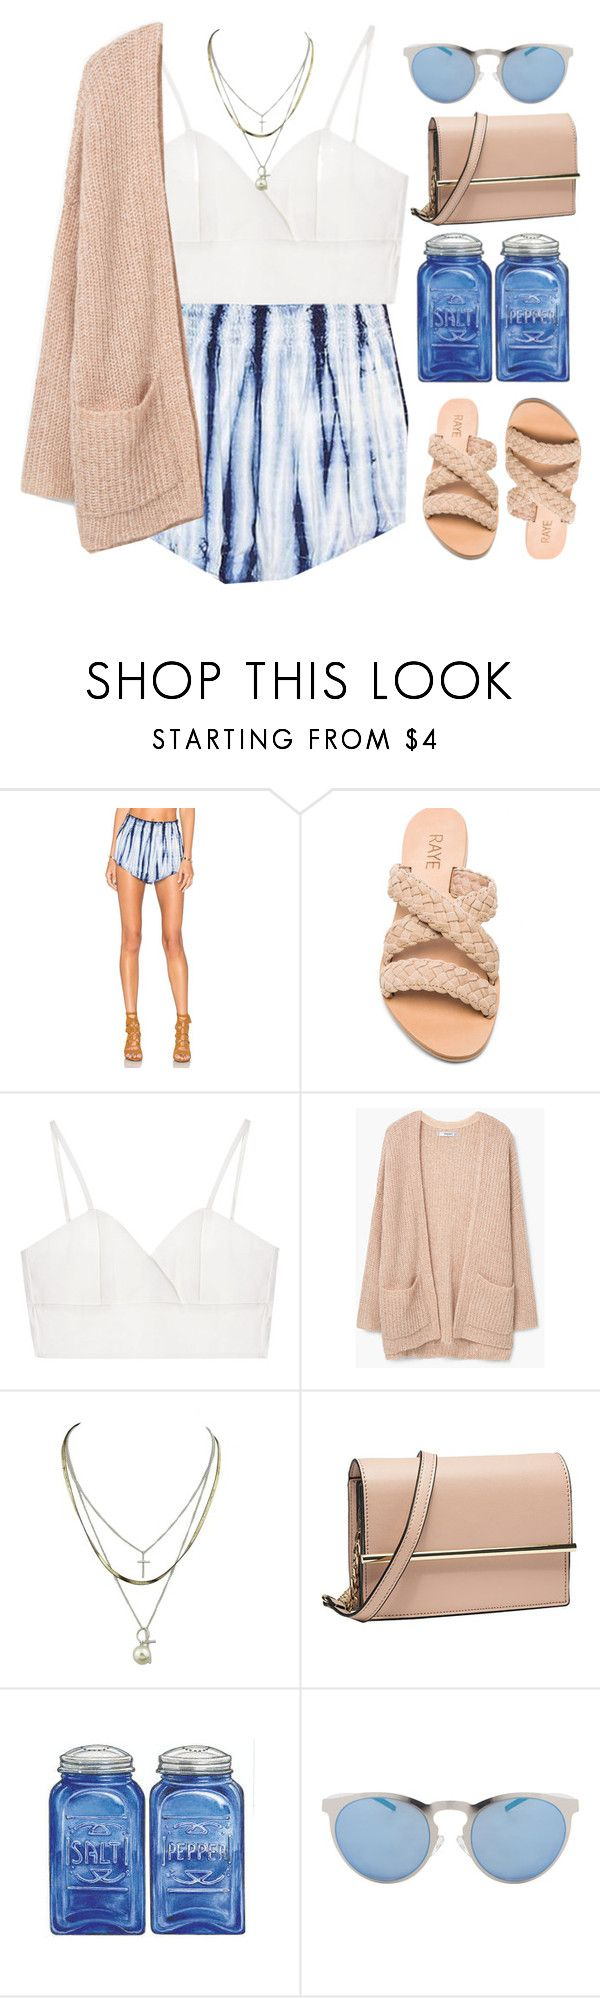 """Untitled #2095"" by credendovides ❤ liked on Polyvore featuring Beach Bunny, Chicnova Fashion, MANGO and Illesteva"